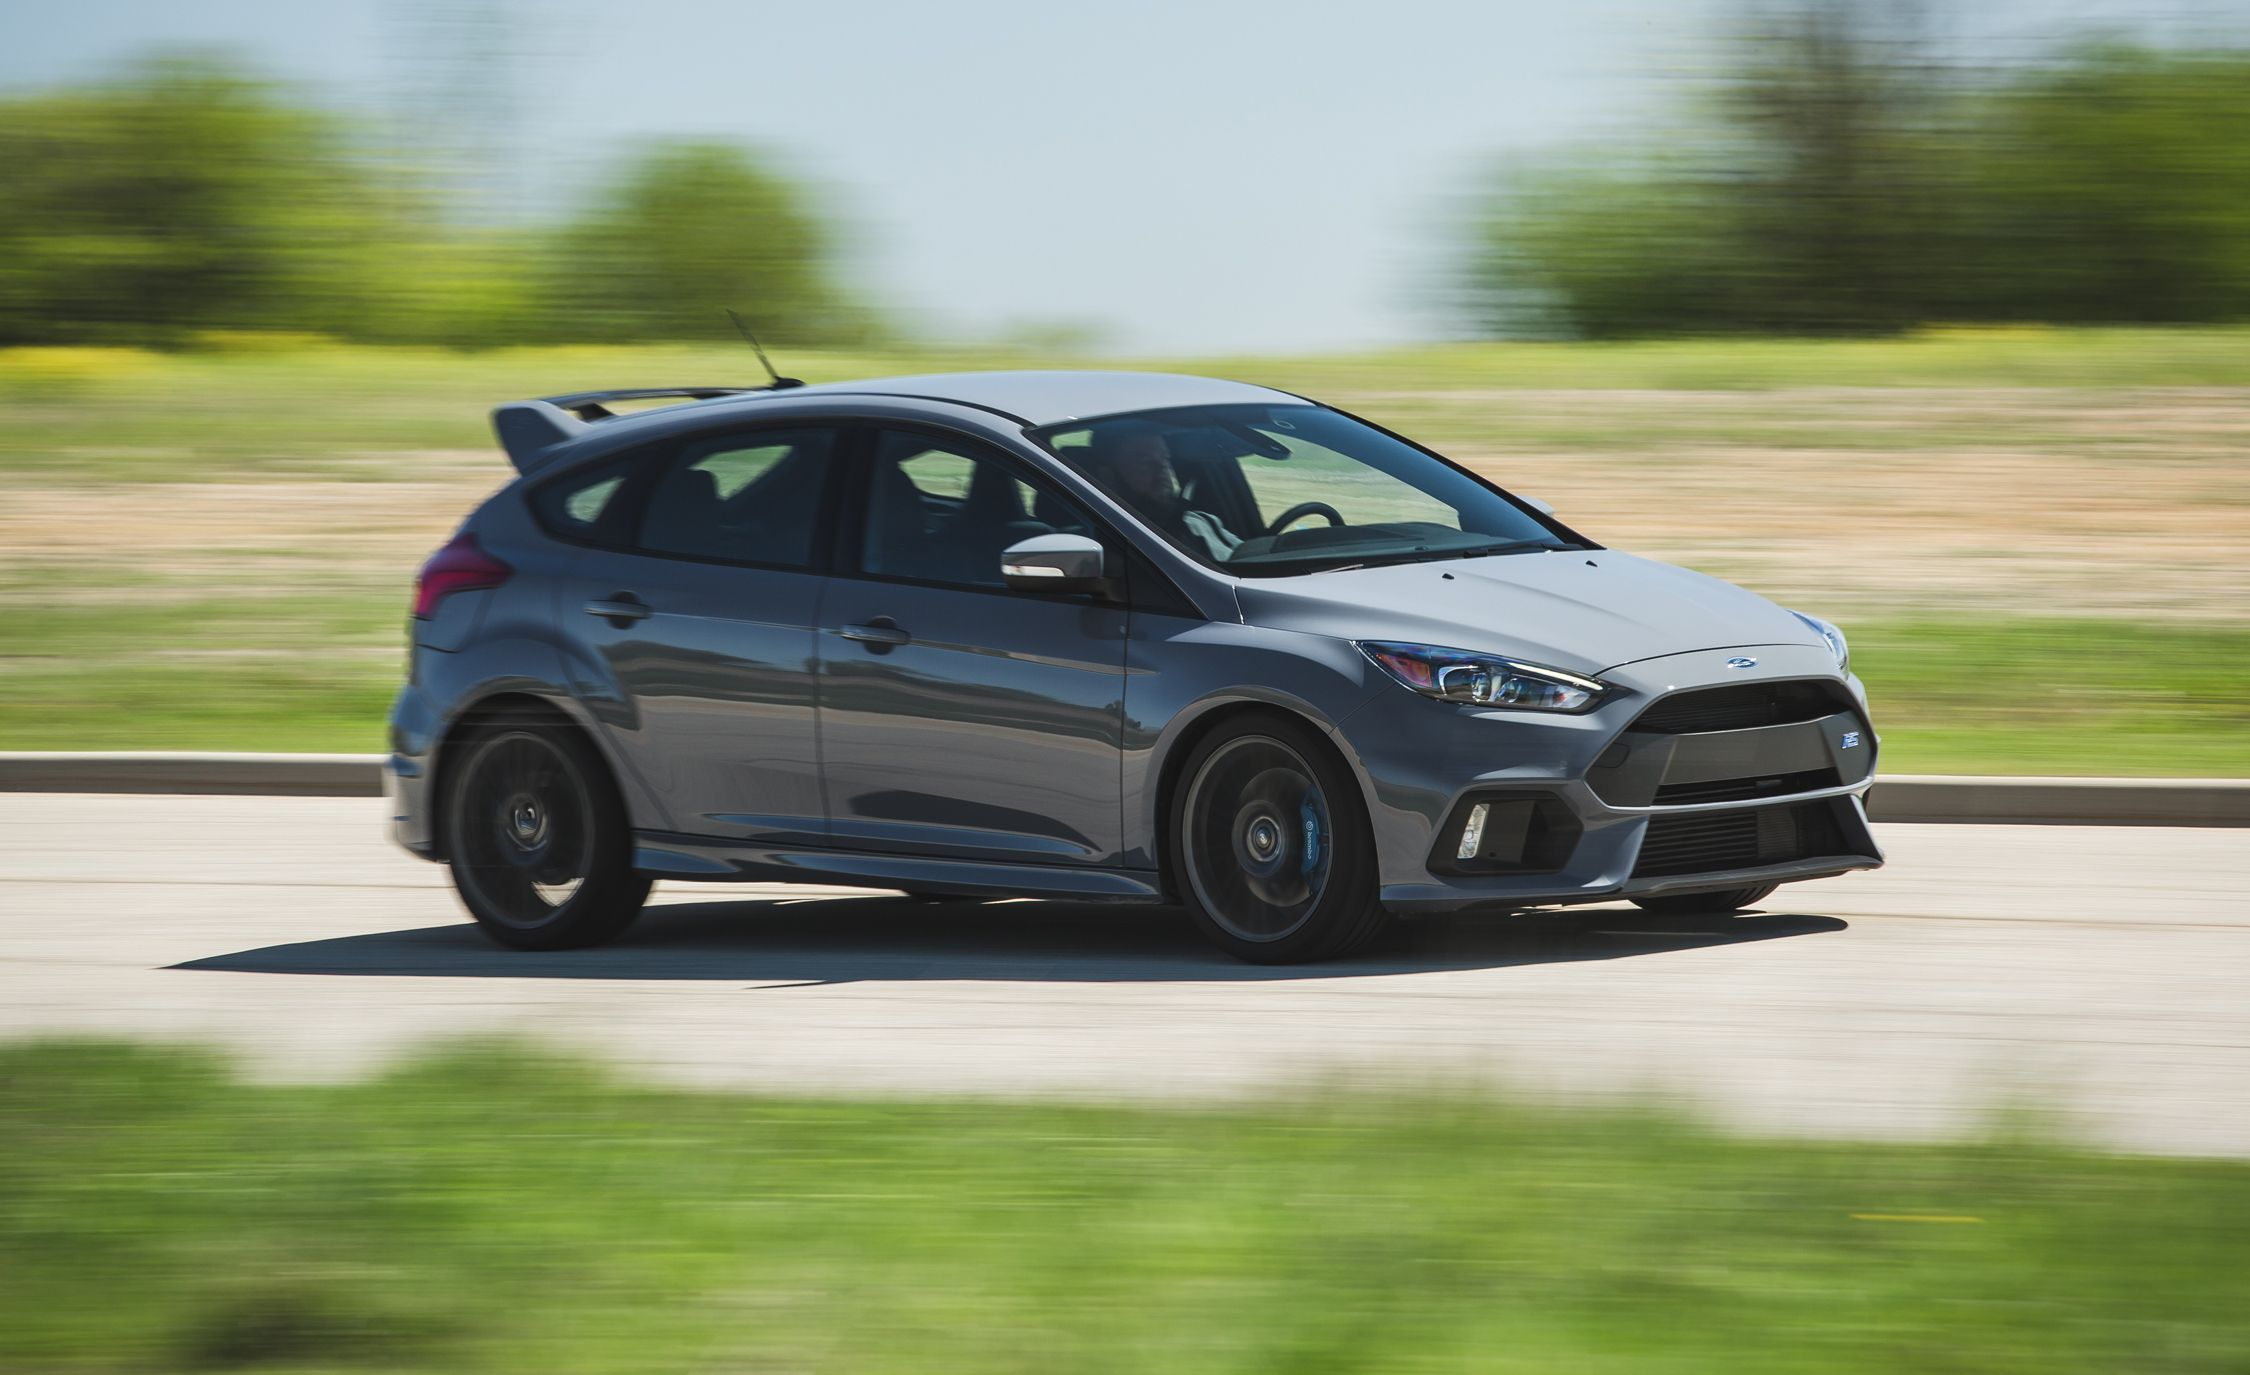 2017 Ford Focus RS | In-Depth Model Review | Car and Driver